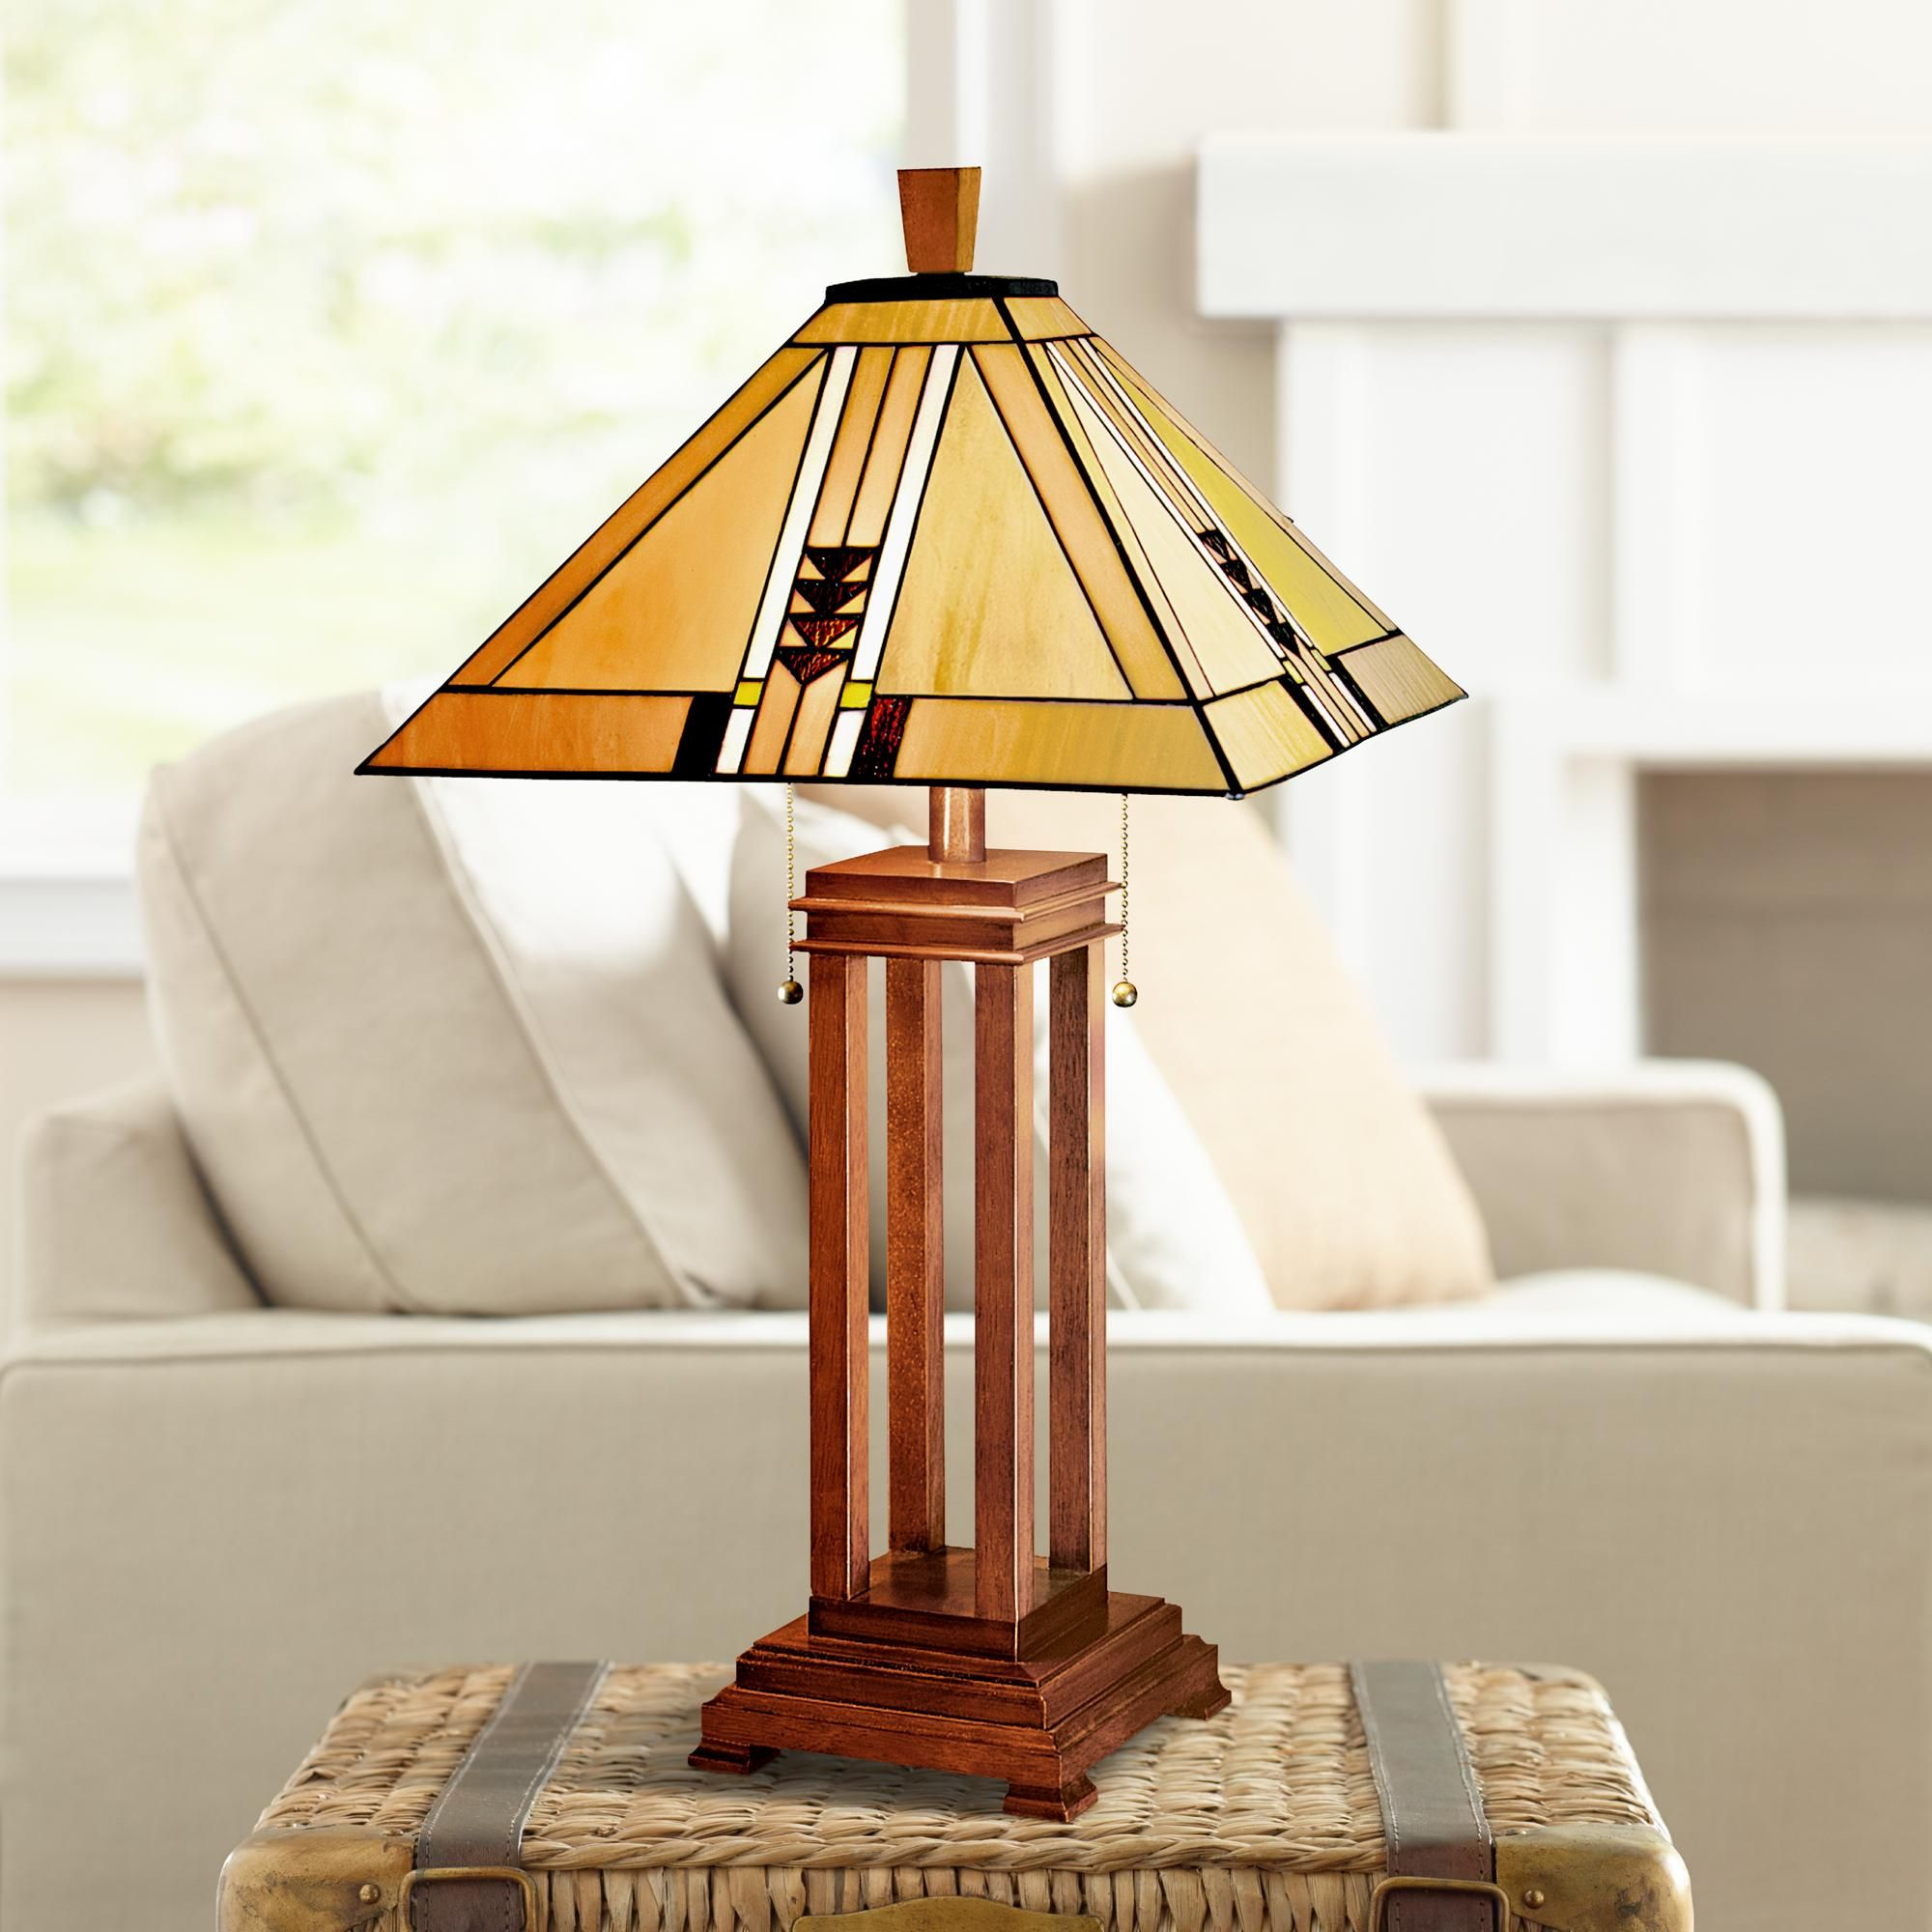 Table Lamps Mission Prairie Table Lamp By Robert Louis Tiffany Tiffany Style Table Lamps Art Deco Table Lamps Mission Style Lighting